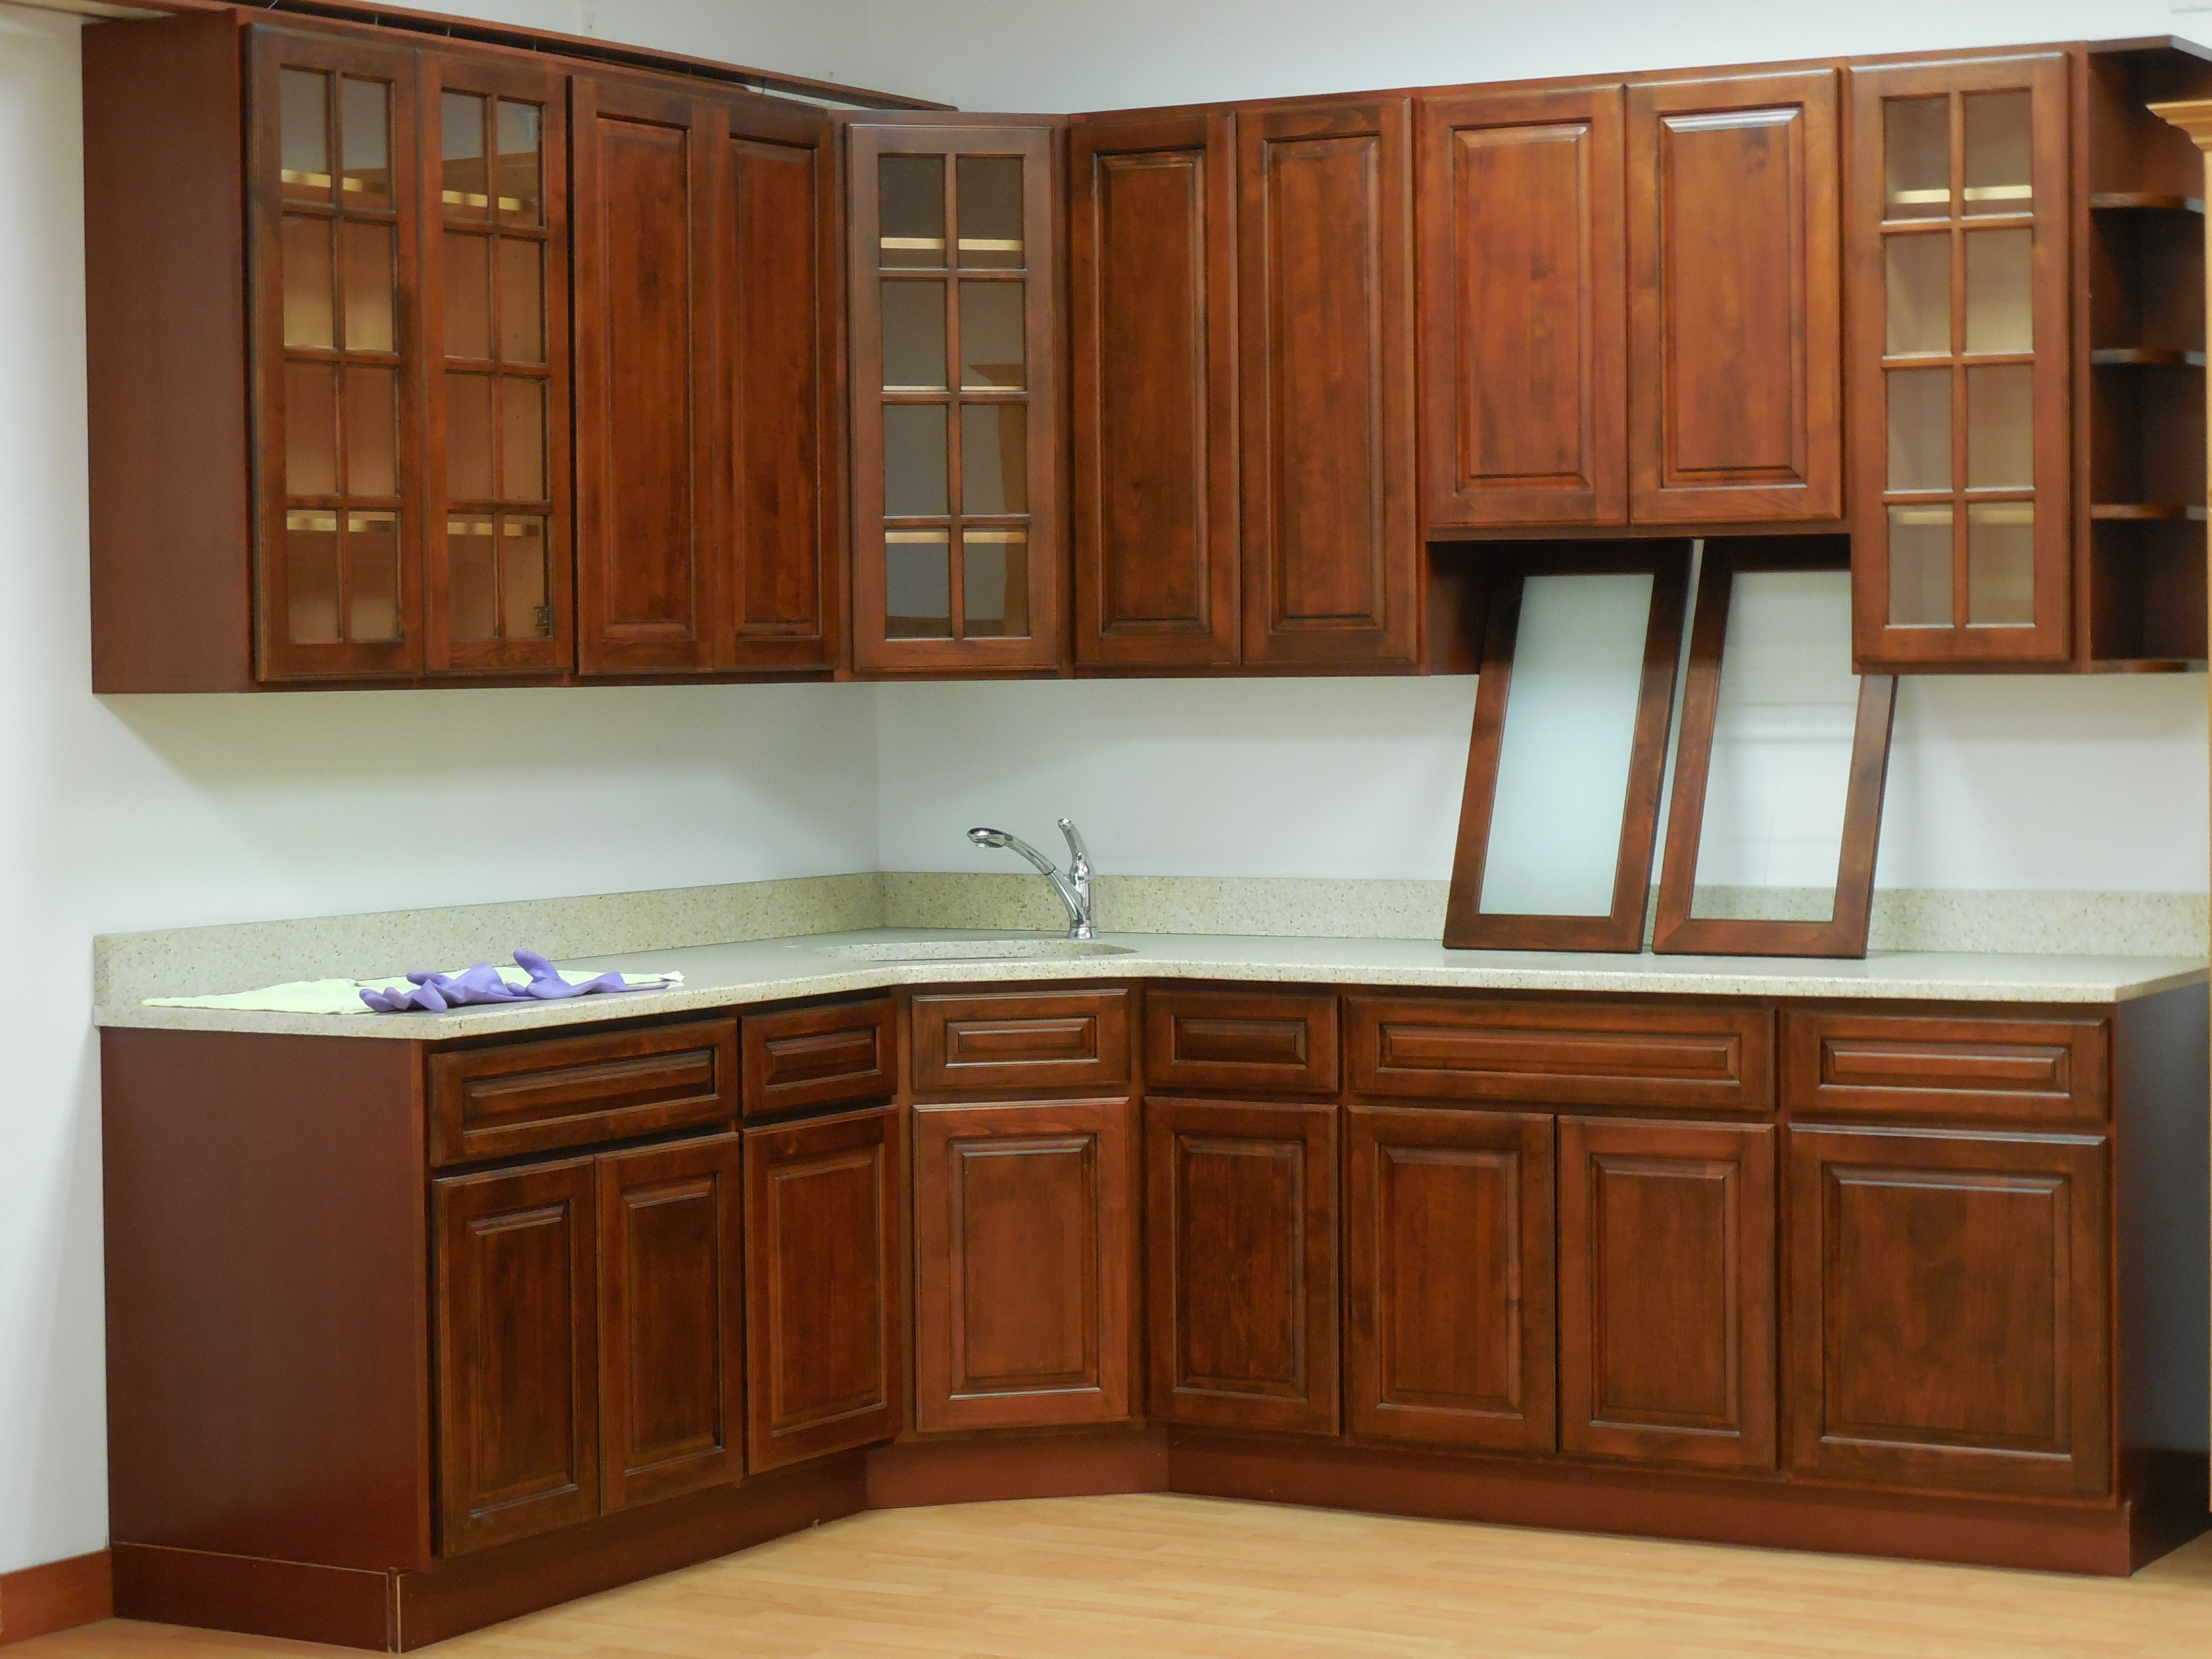 j&s distributors - major cabinets